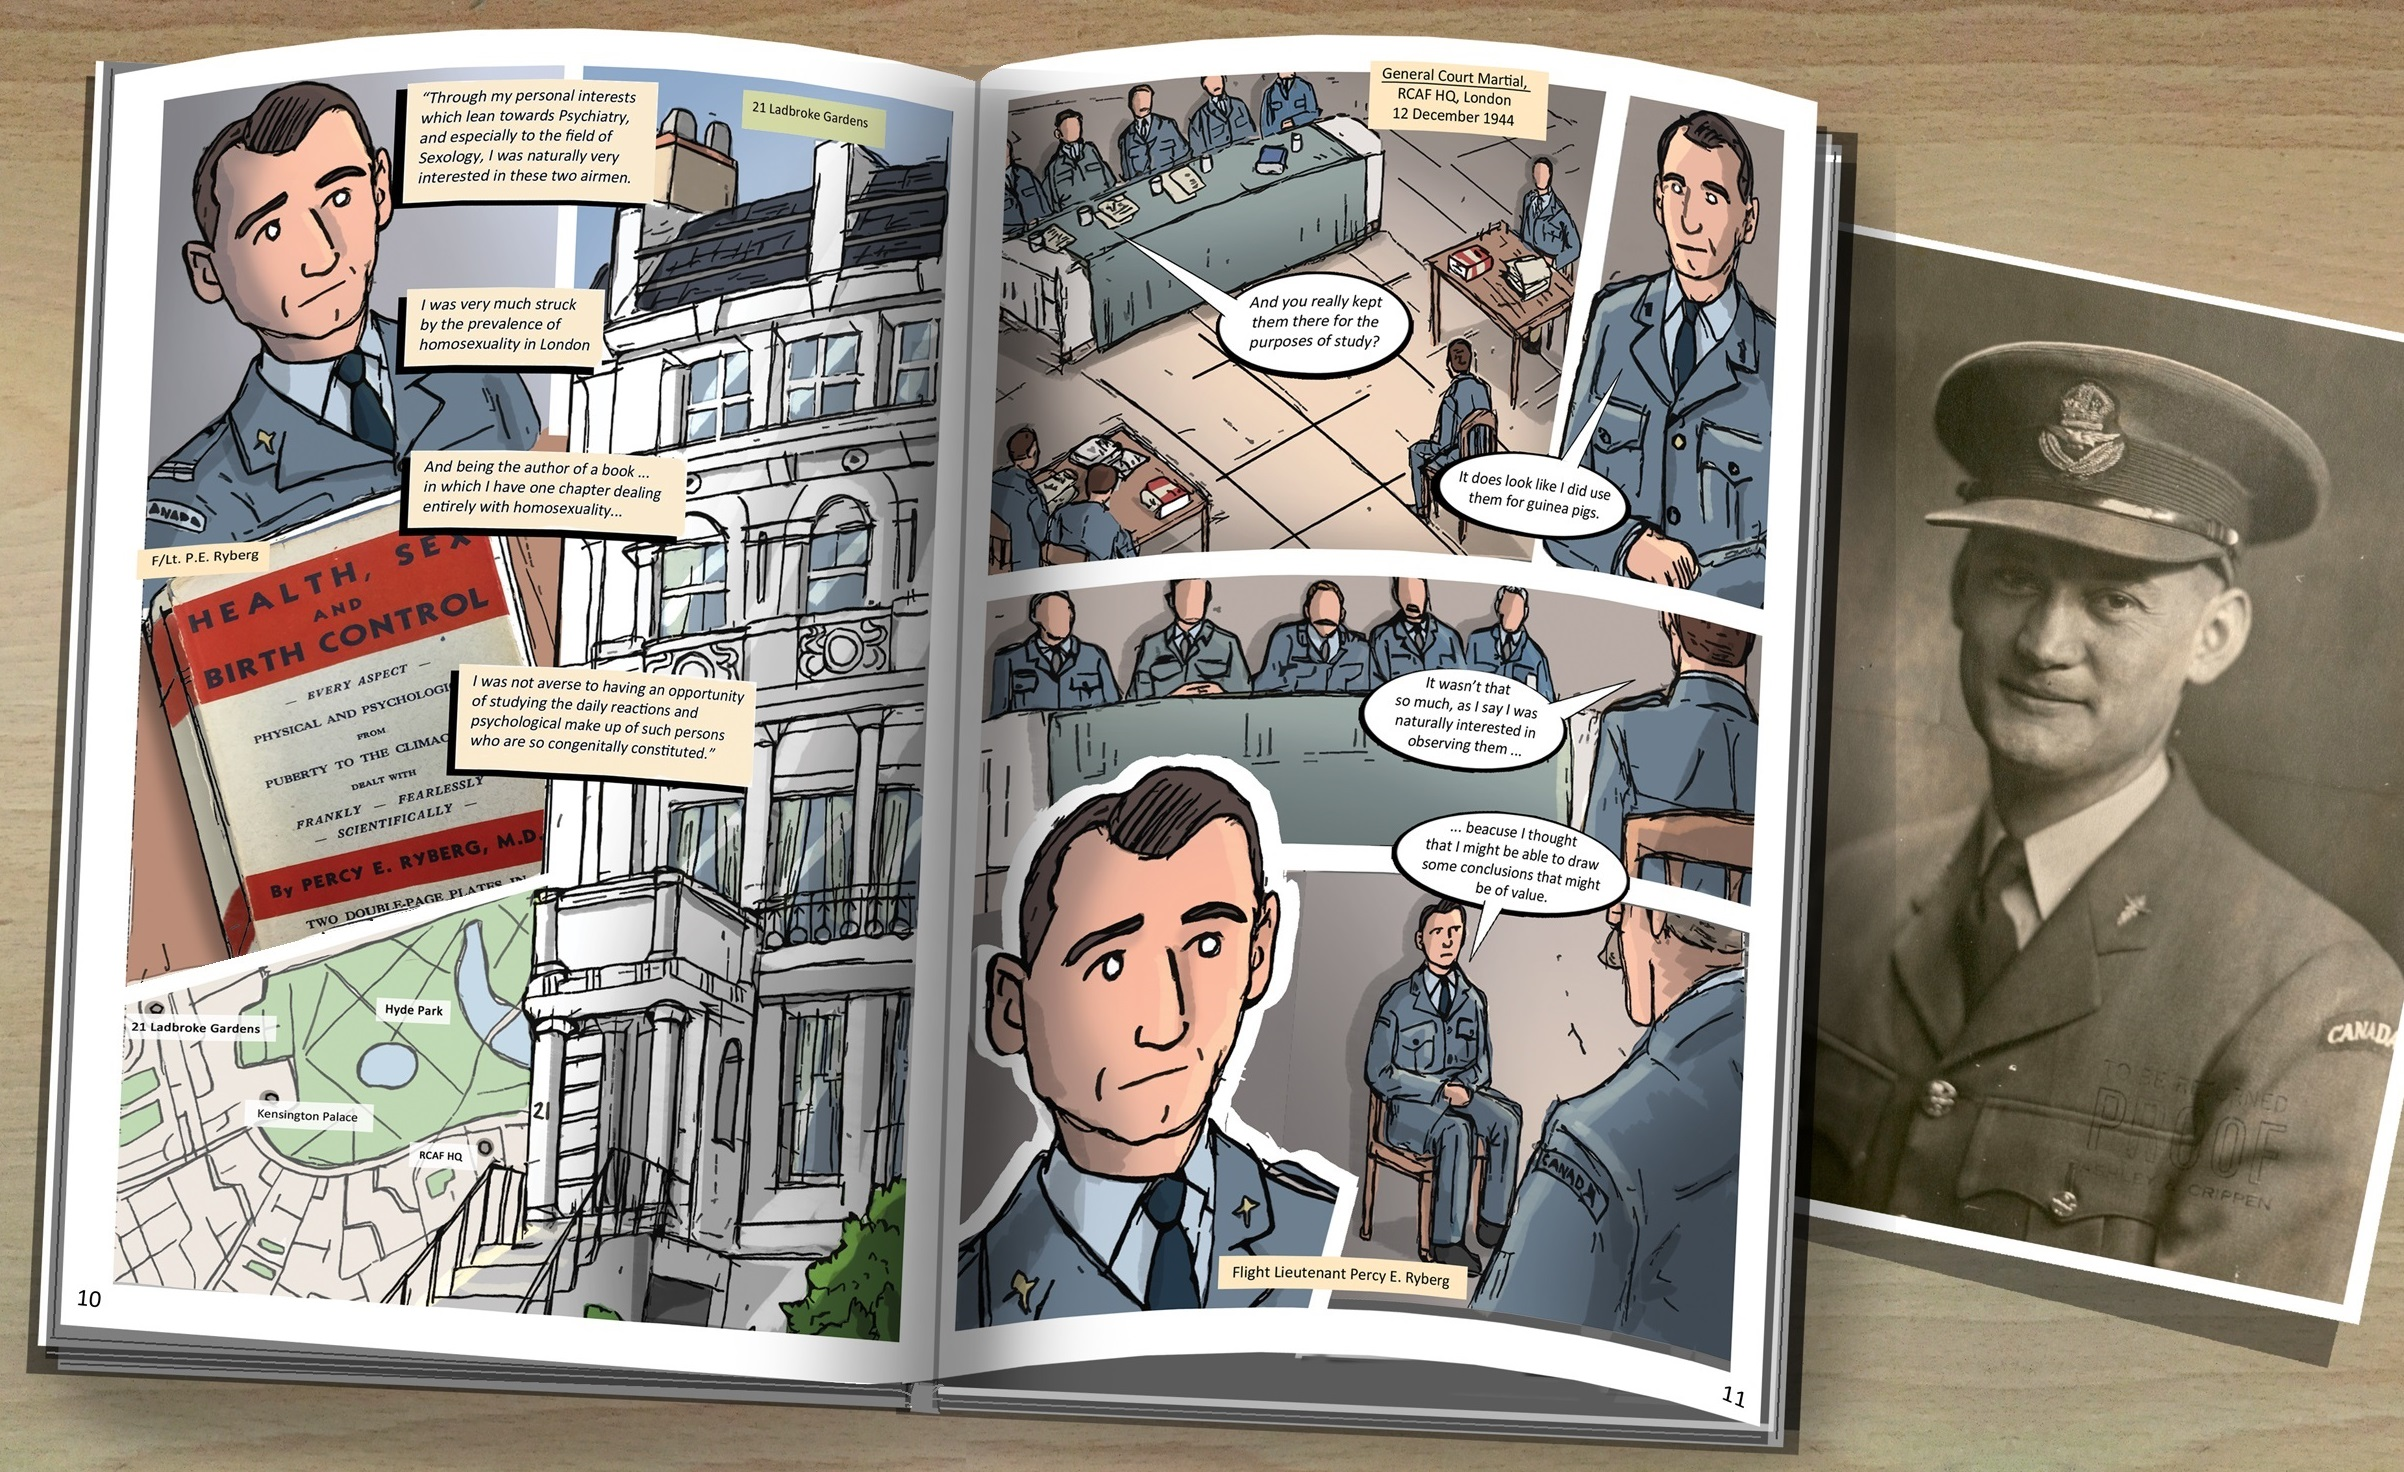 comic book showing Dr. Ryberg